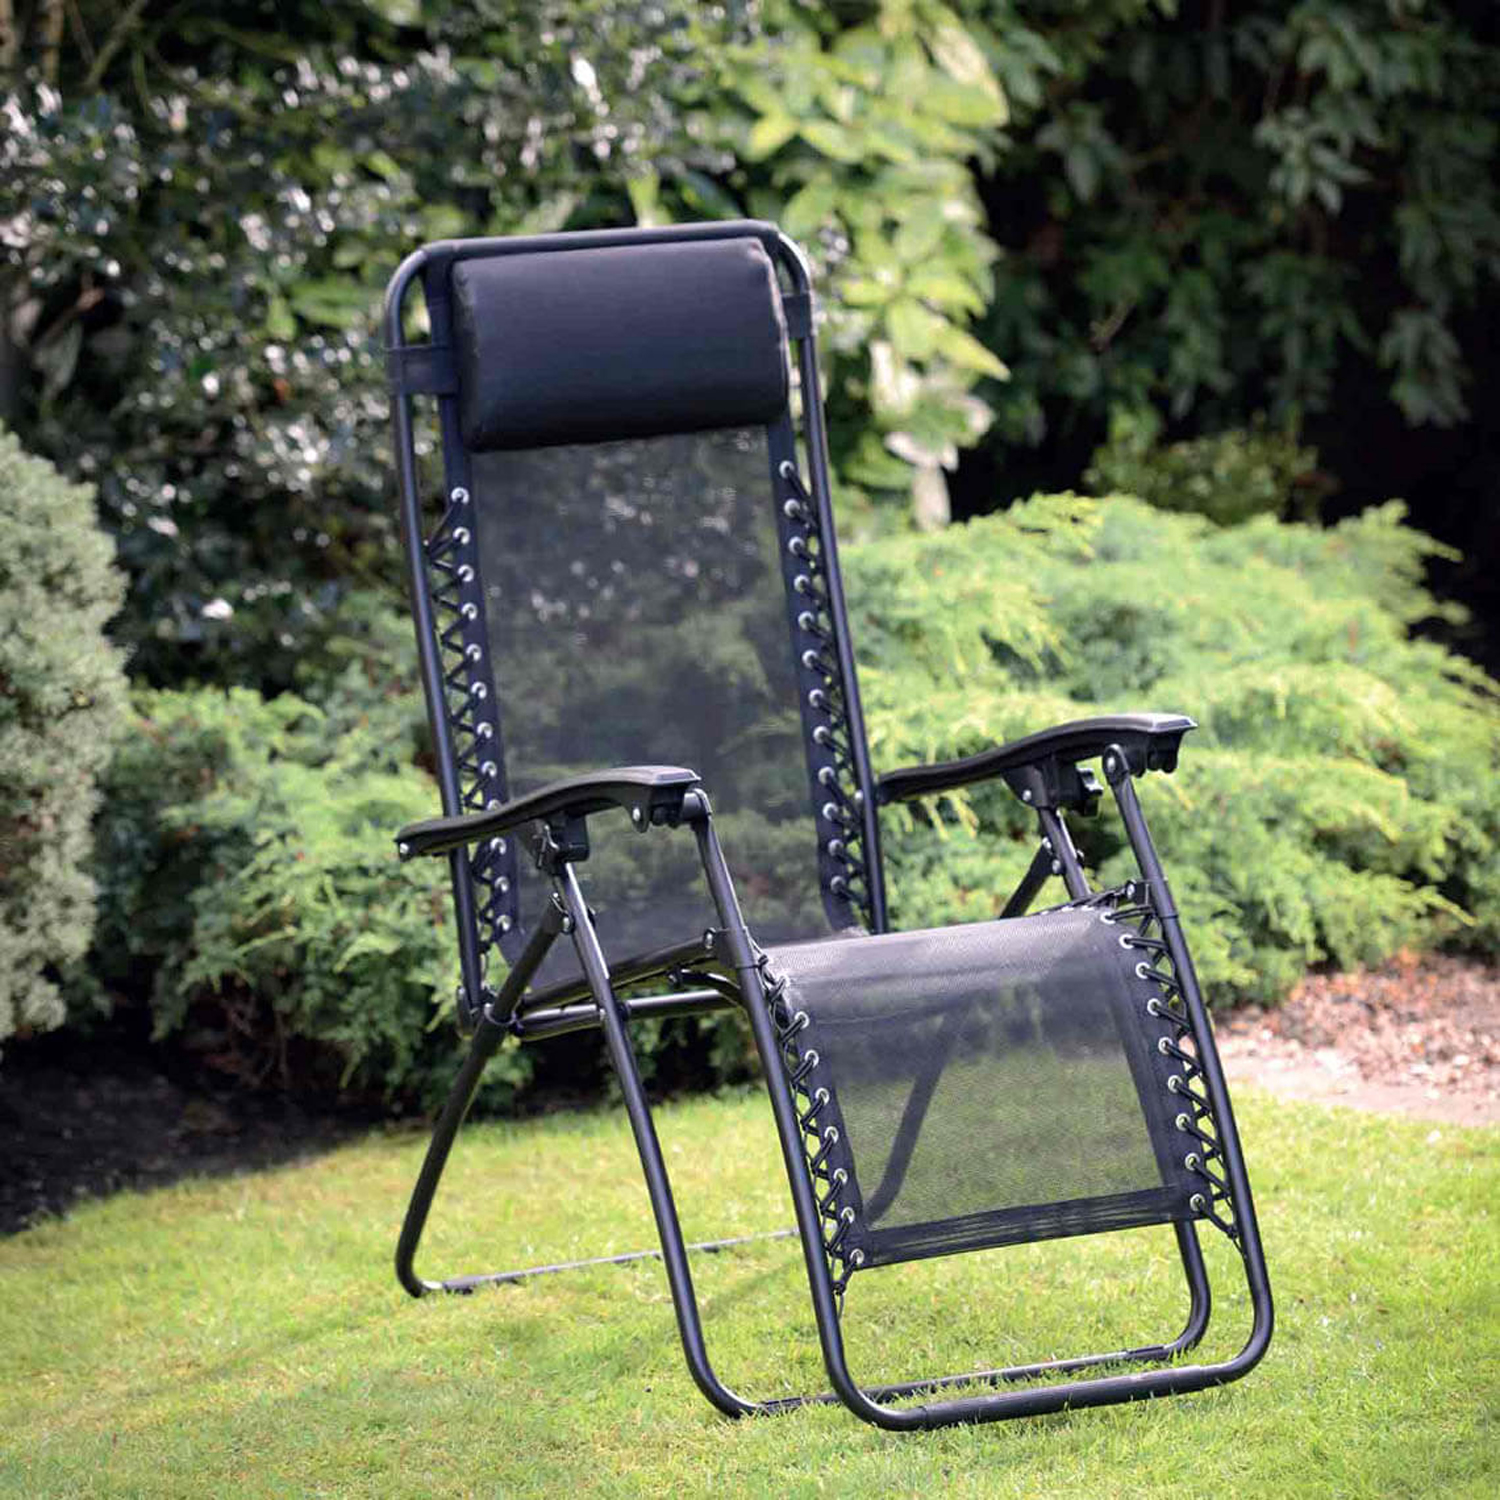 Chairs And More: Zero Gravity Black Relaxing Garden Chair